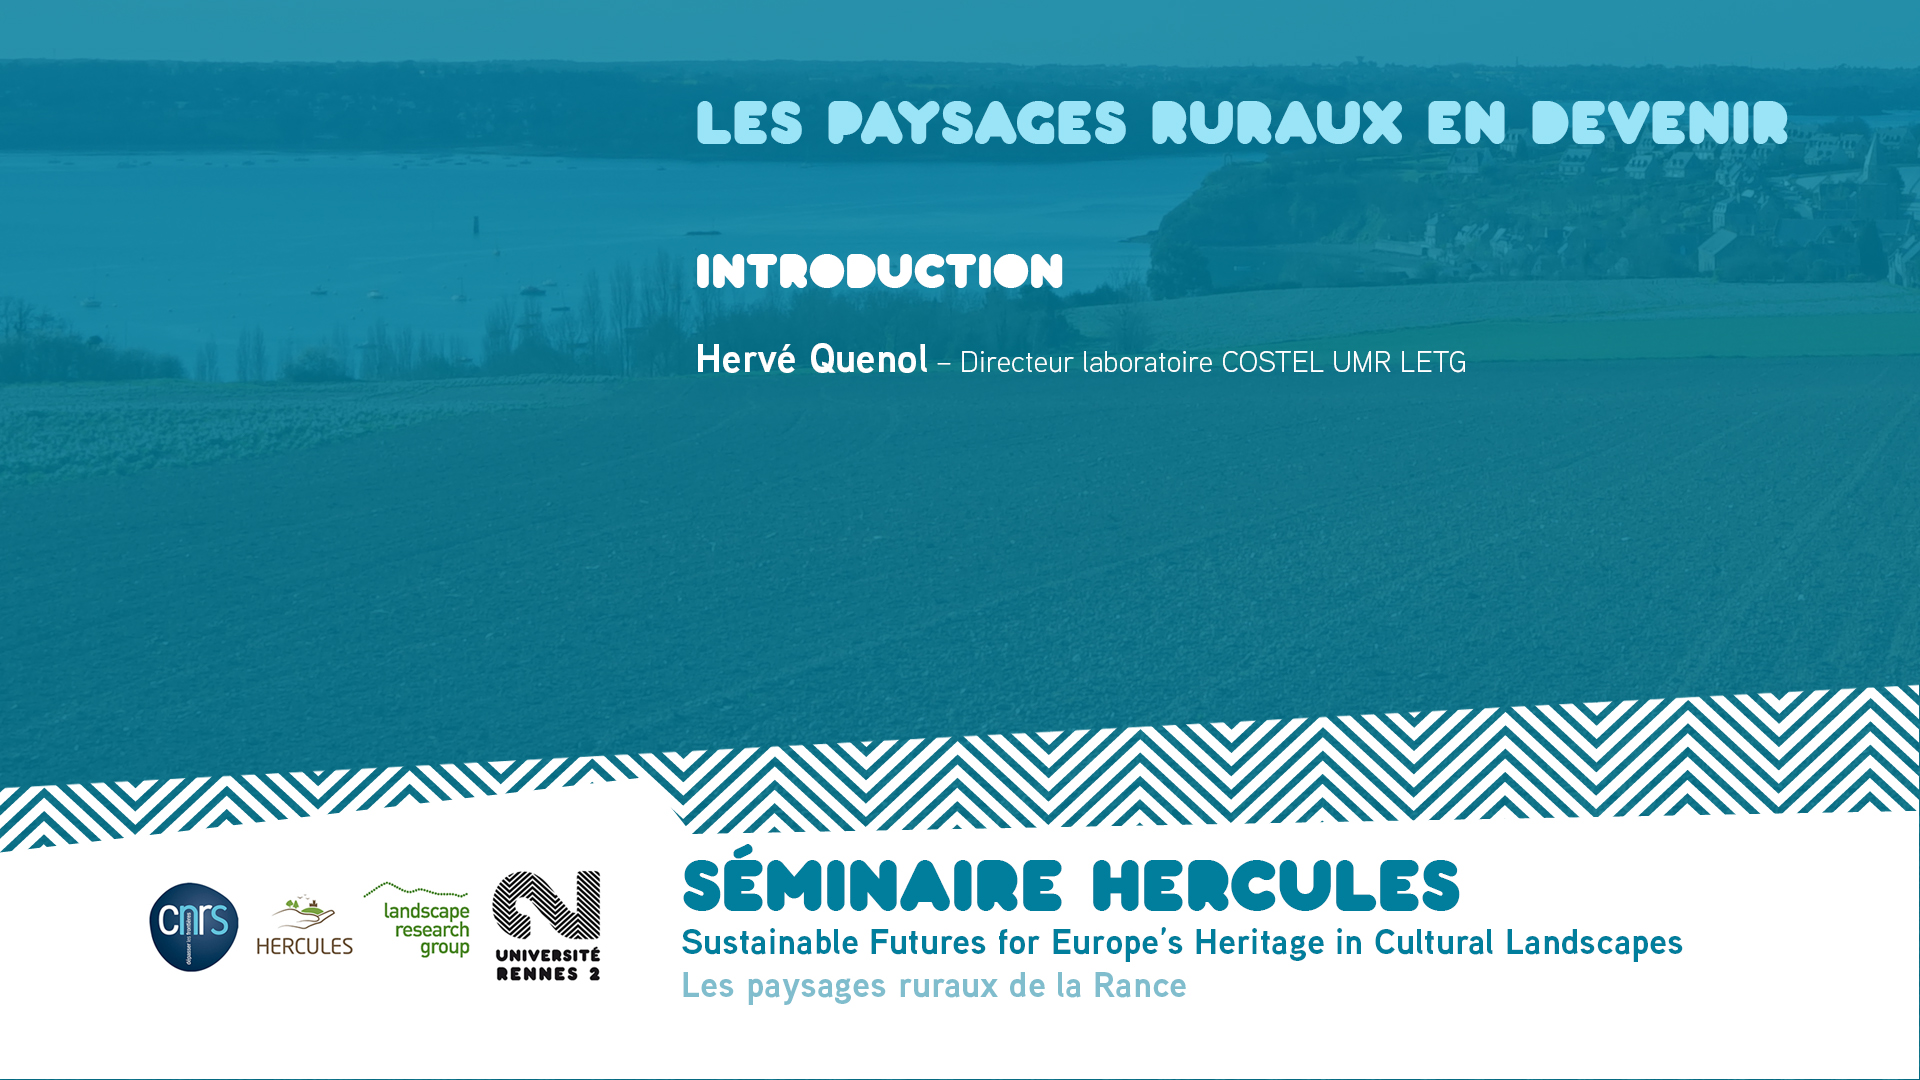 Les paysages ruraux en devenir – Introduction - Sustainable Futures for Europe's Heritage in Cultural Landscapes |